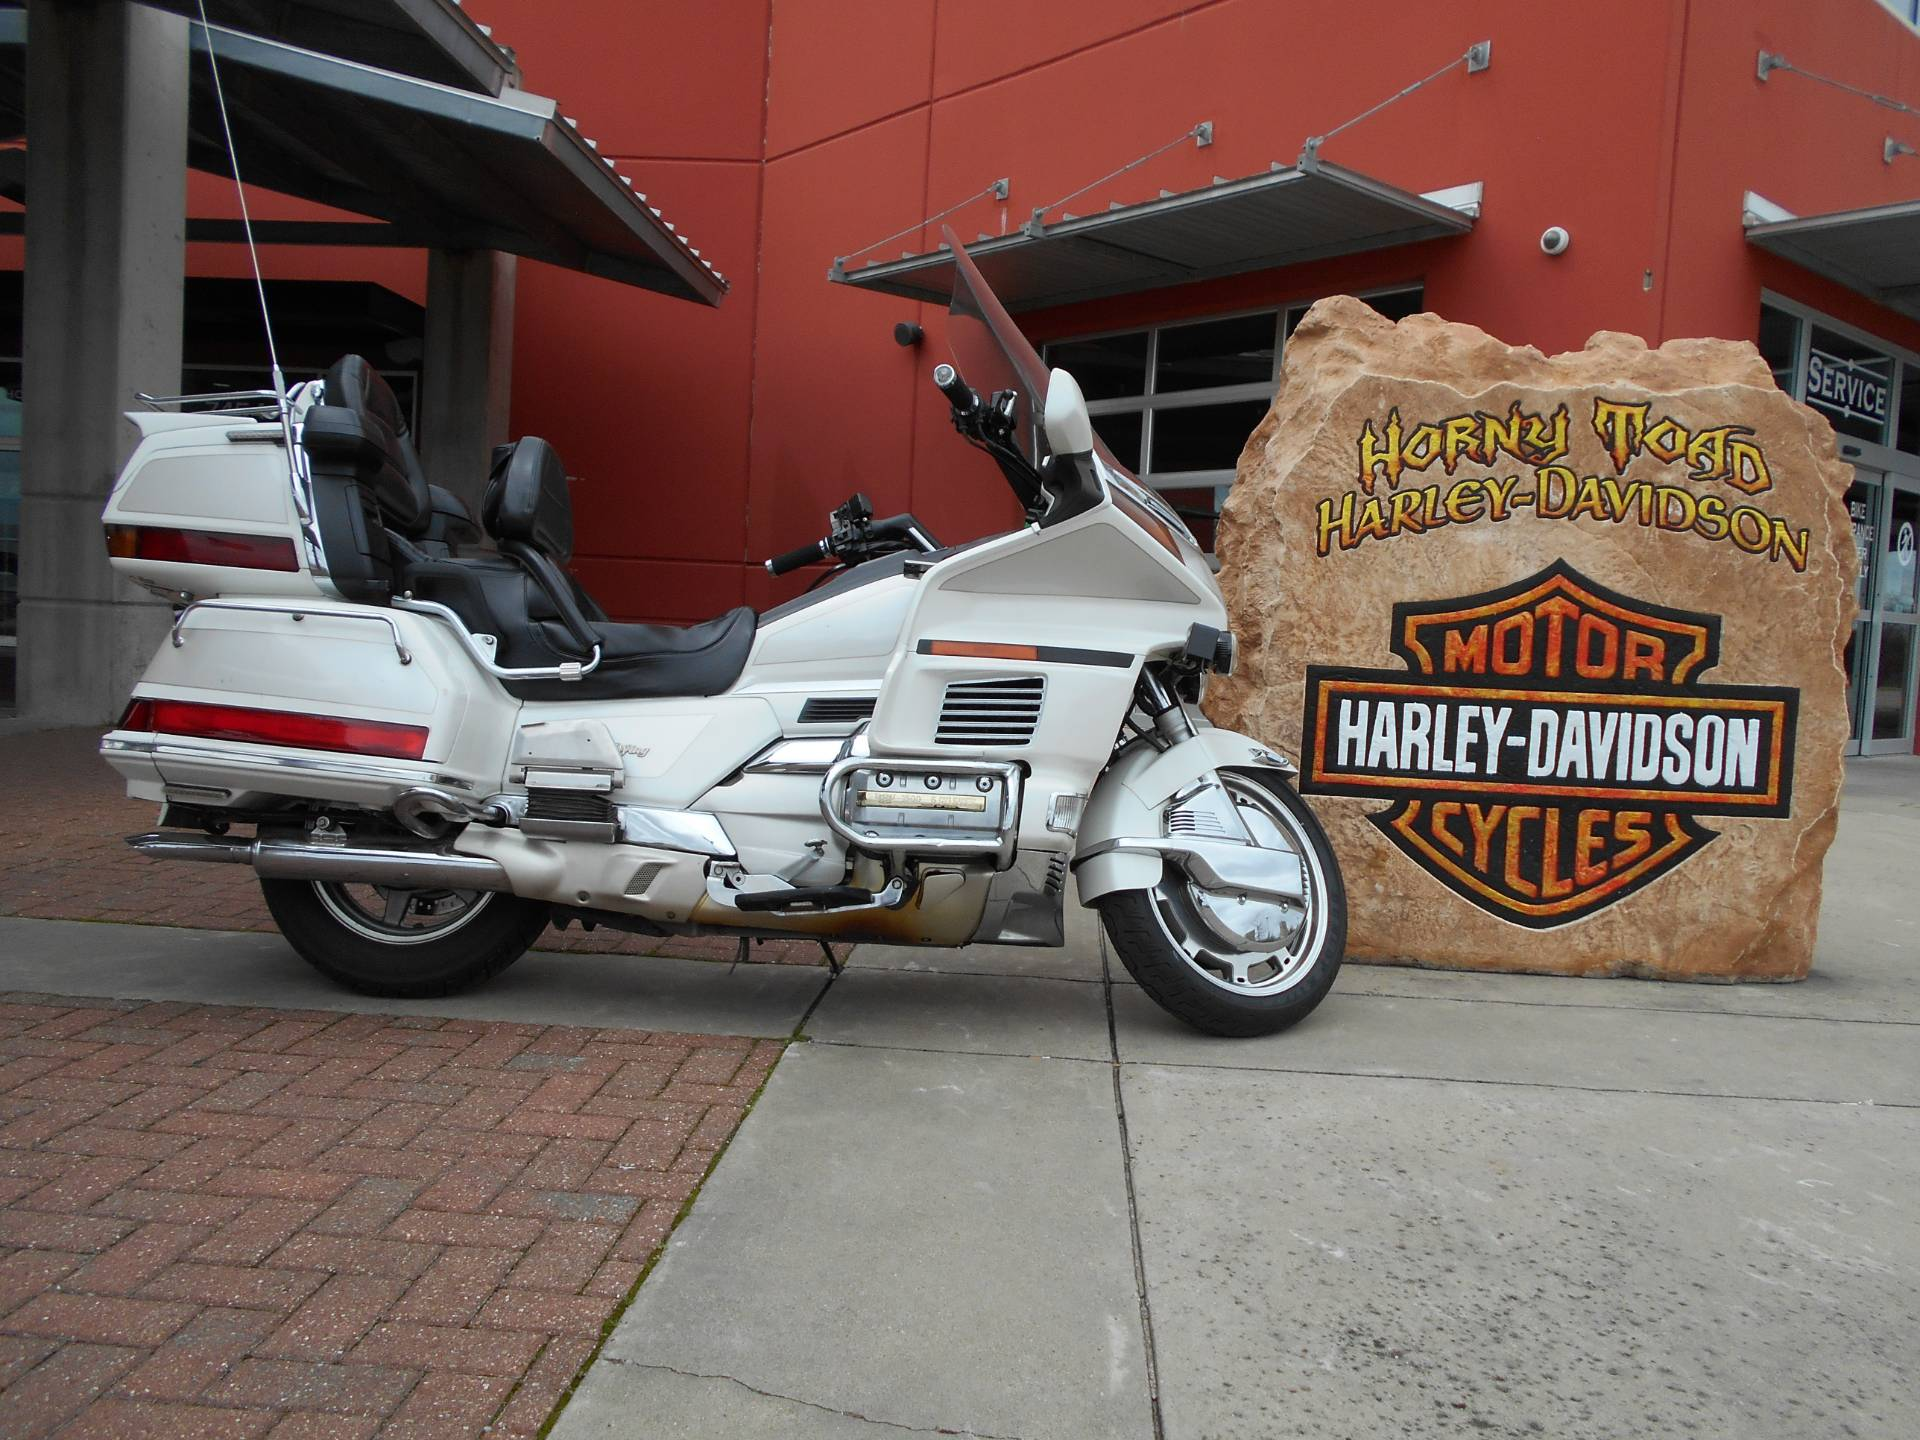 1997 Honda GOLDWING in Temple, Texas - Photo 1